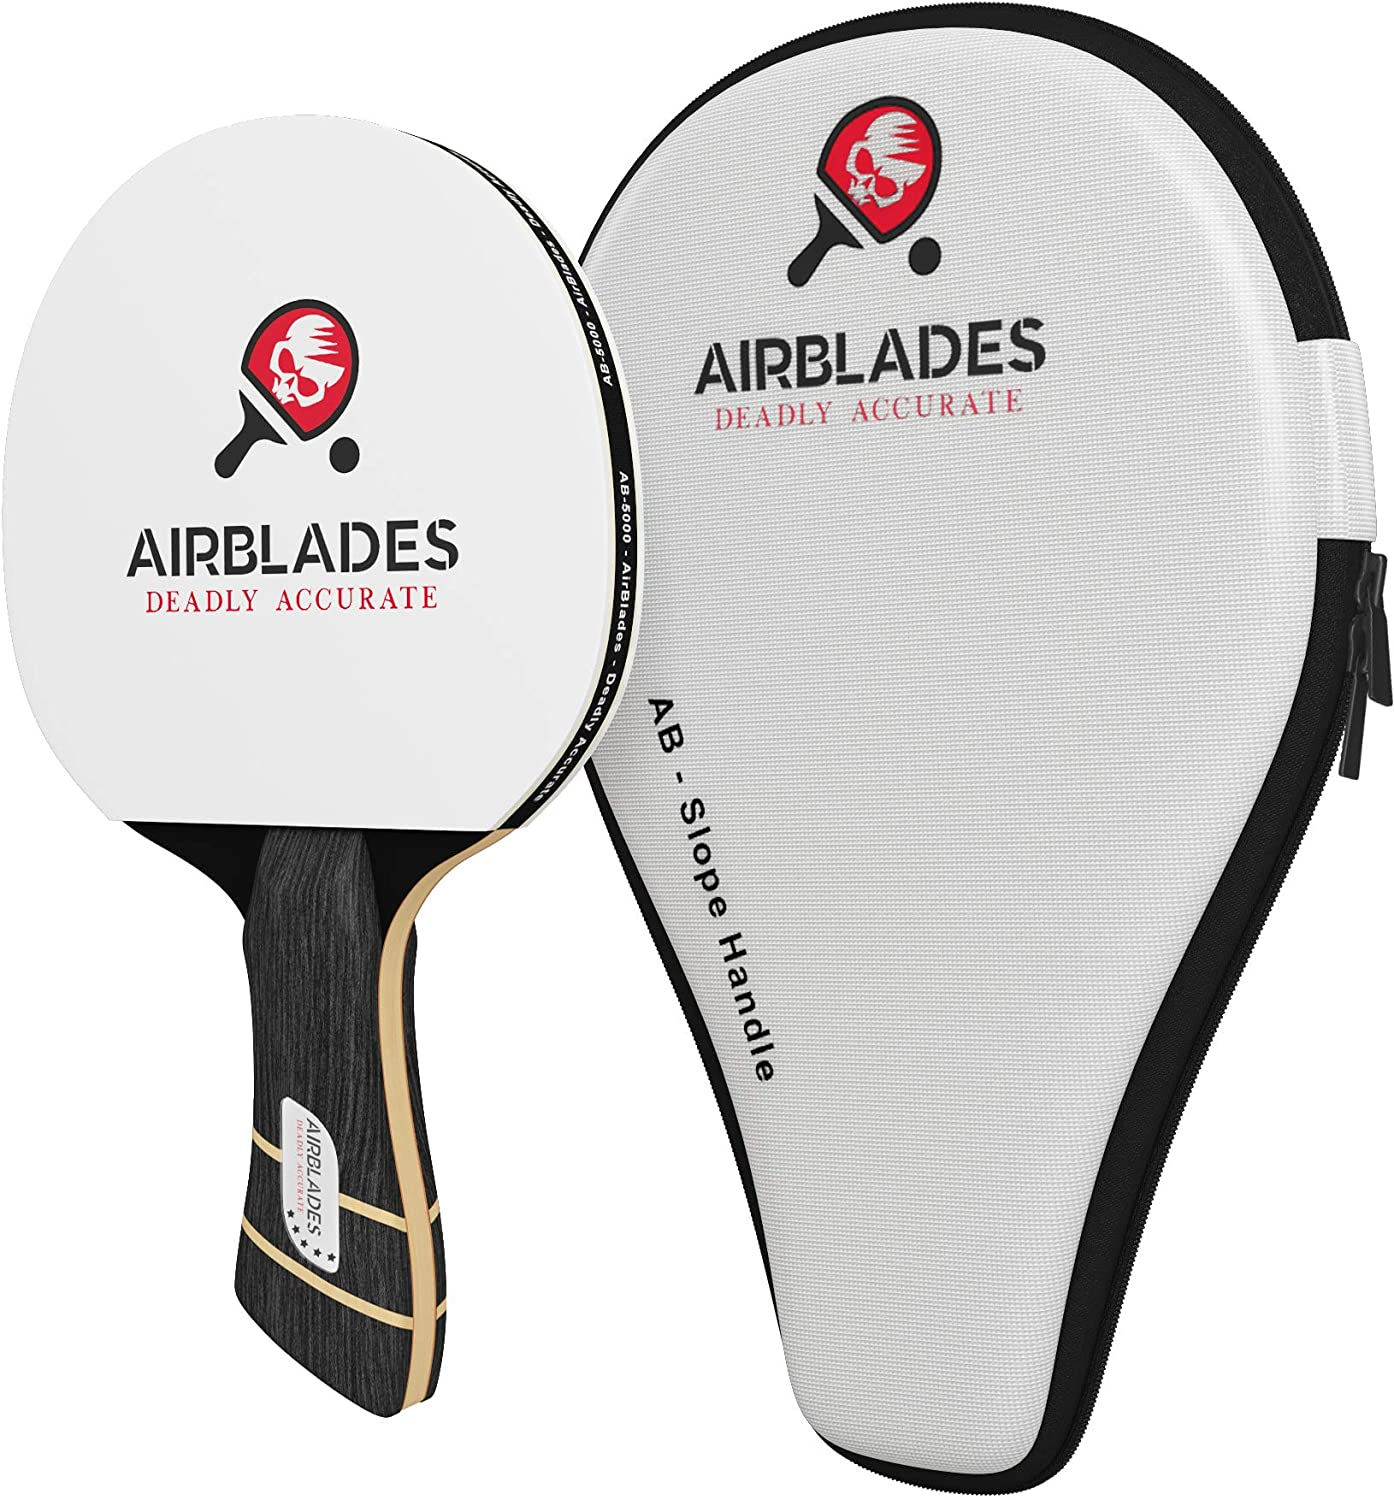 Professional Ping Pong Paddle Overseas parallel import regular item with Hard Sale price Pro Case Carry T Table